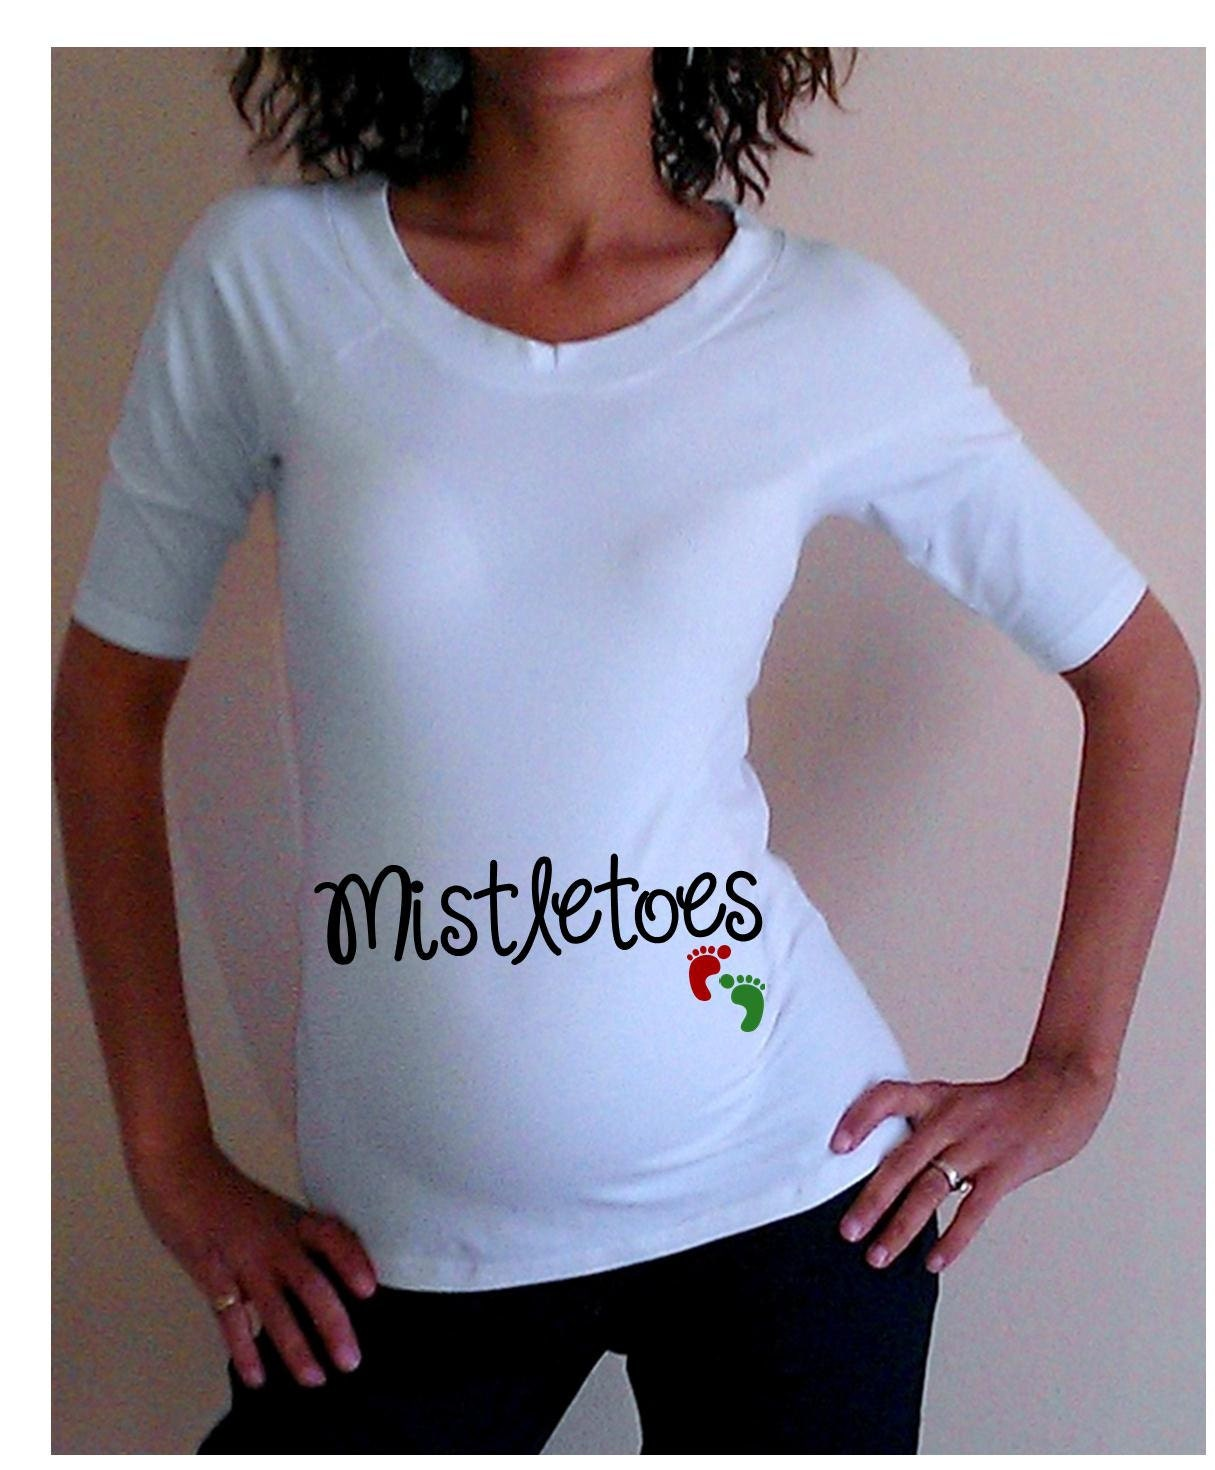 Funny maternity shirts and cute baby shower gift ideas for every new mom! We have cute pregnant shirt and hilarious pregnancy gifts. Get a baby announcement shirt for pregnant women or a cool pregnancy tshirt for Mothers Day! Maternity tees with sayings for your gender reveal get your Mommy To Be T shirt!